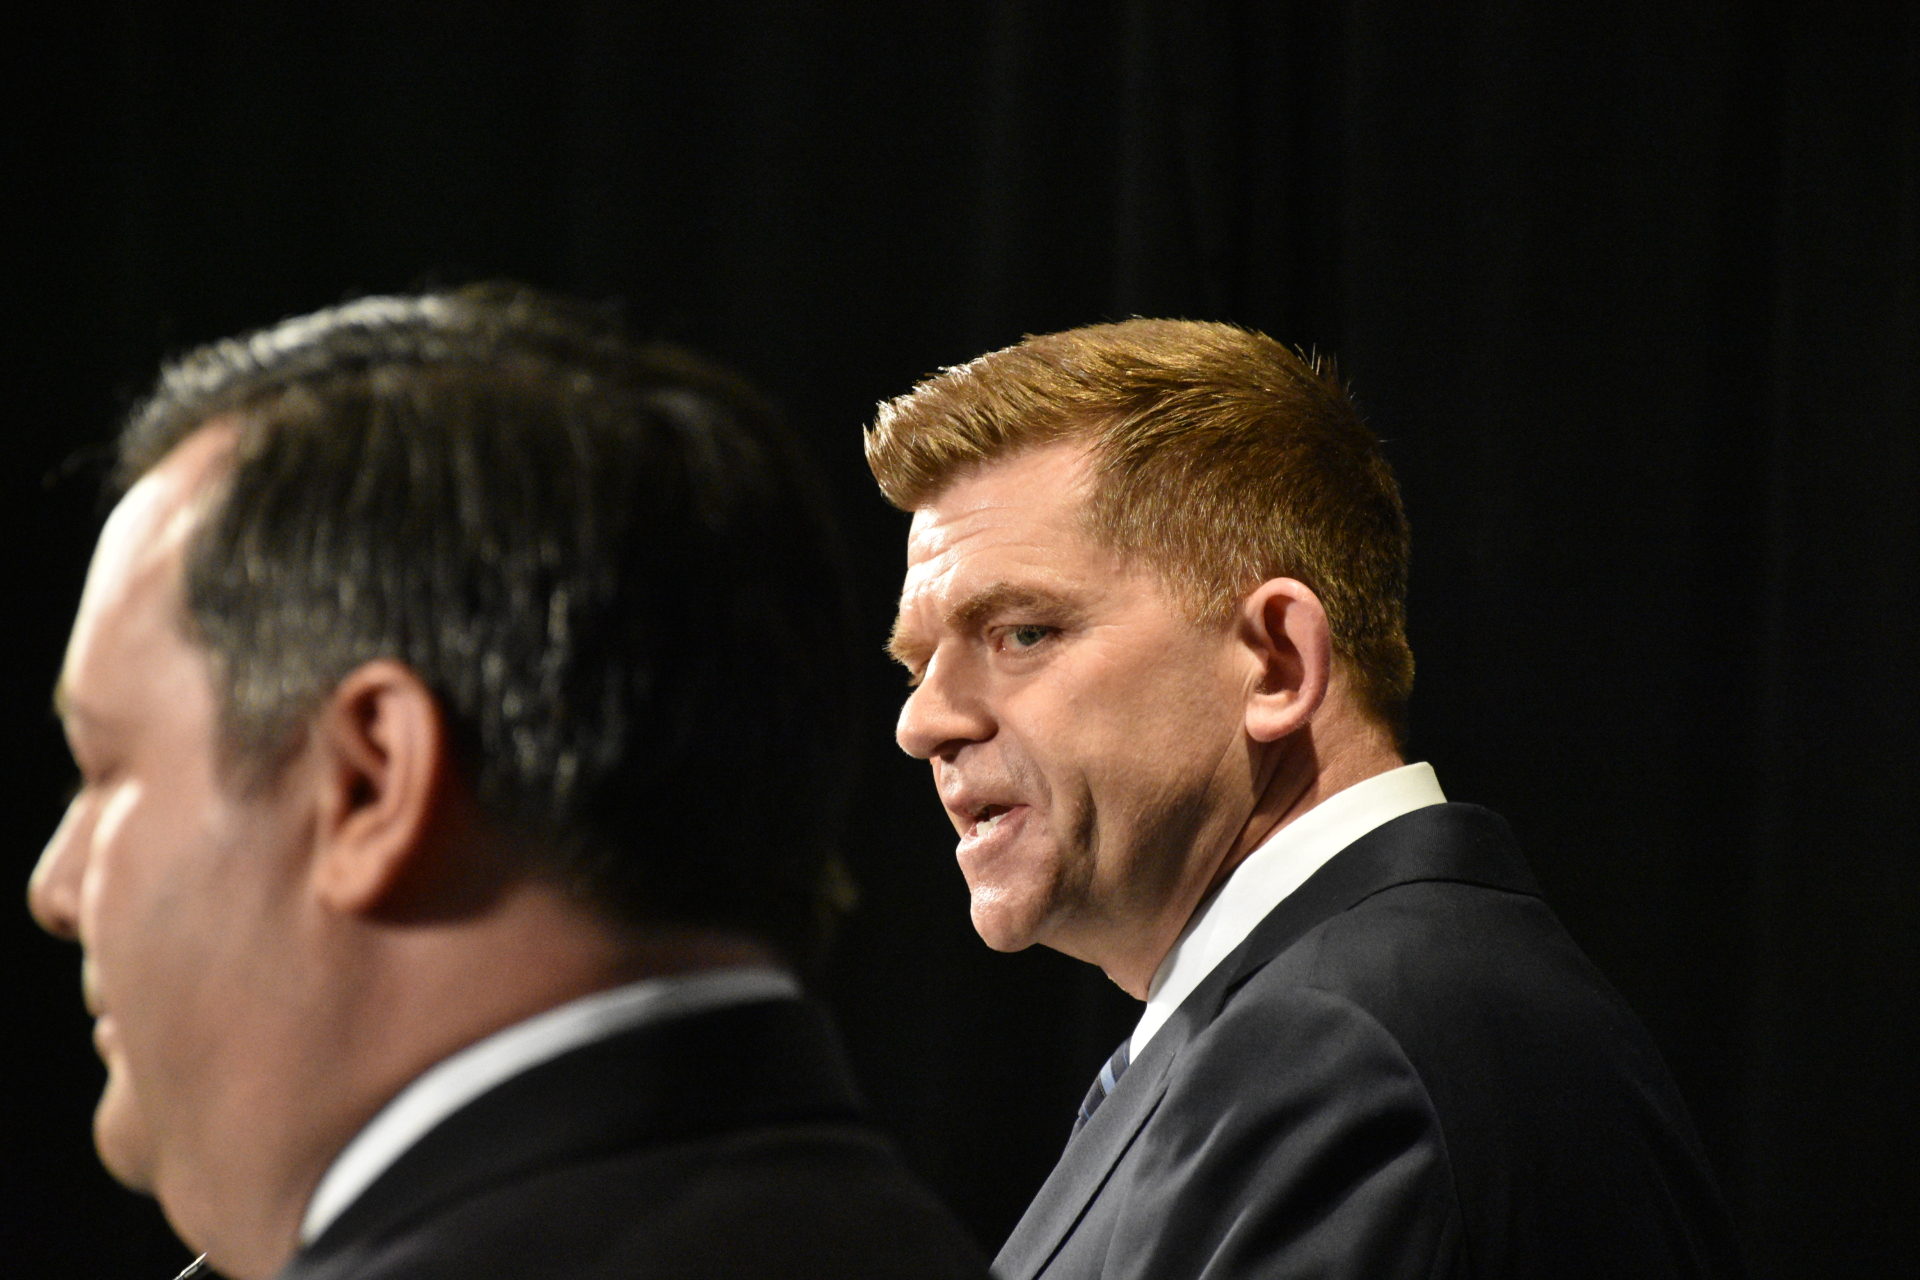 Former Wildrose leader Brian Jean shares a stage with Jason Kenney during the leadership race in 2017. (Terry Reith/CBC)